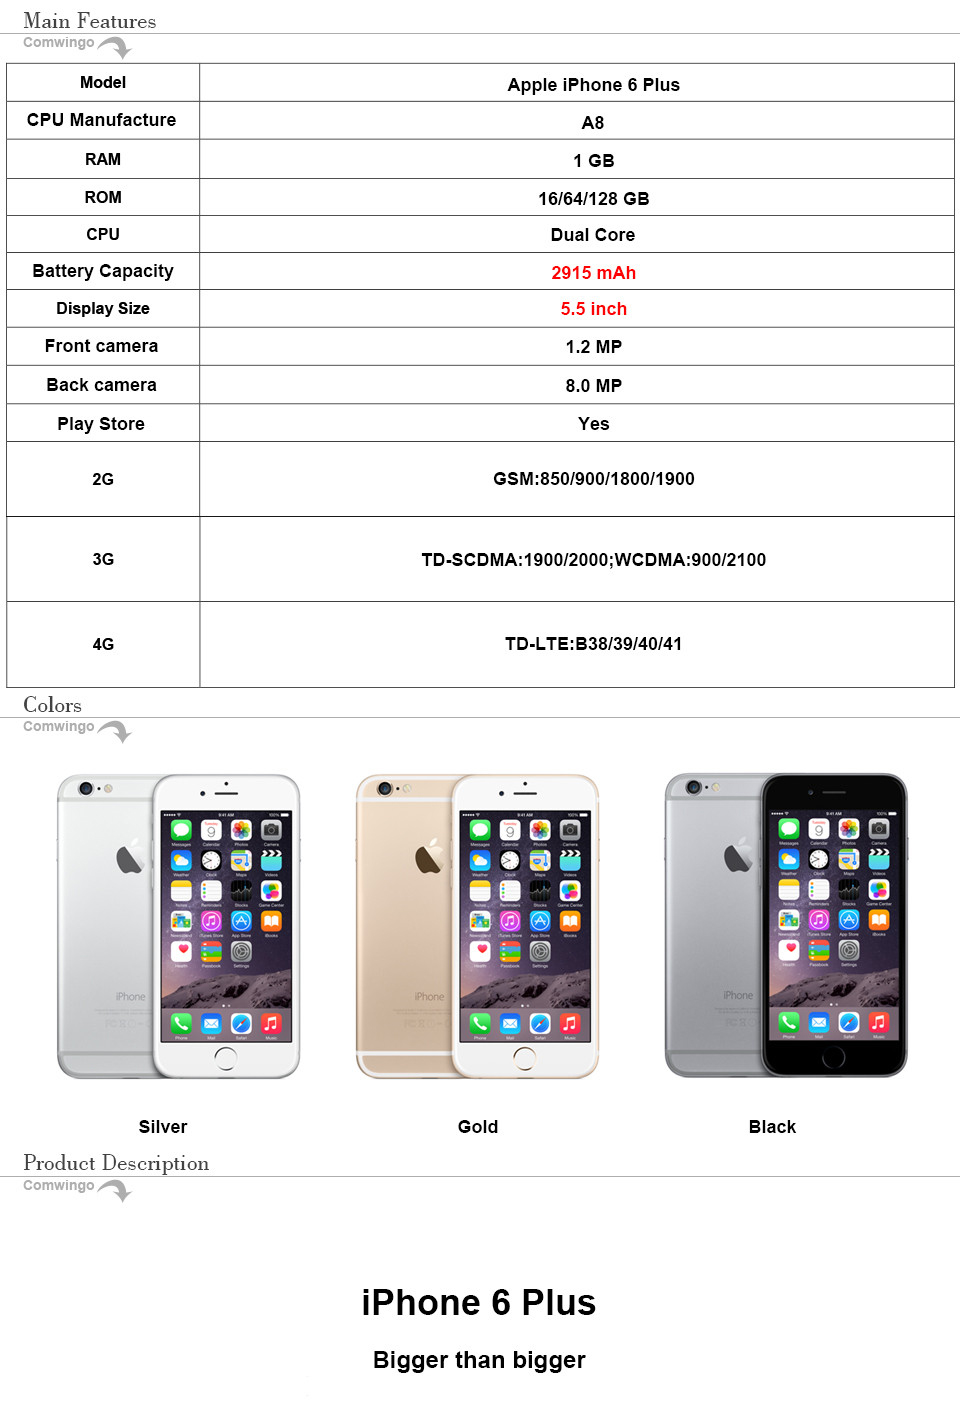 Apple iPhone 6 Plus with 1 GB RAM and 16/64/128 GB ROM